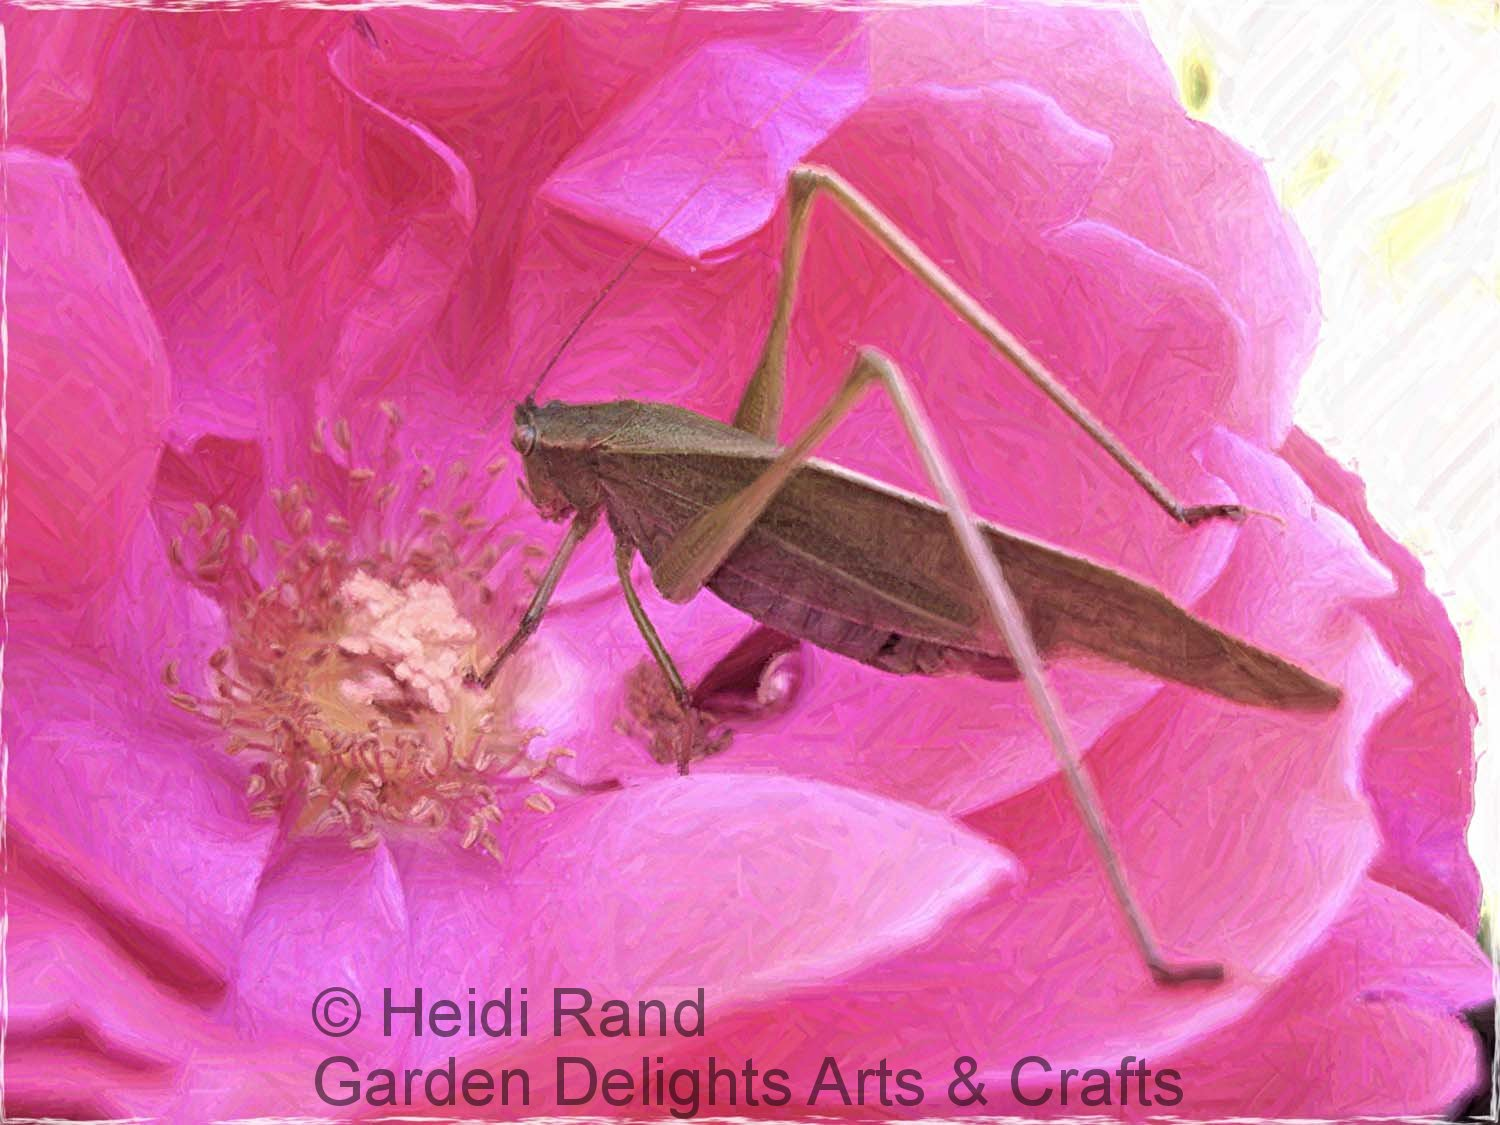 Grasshopper on rose